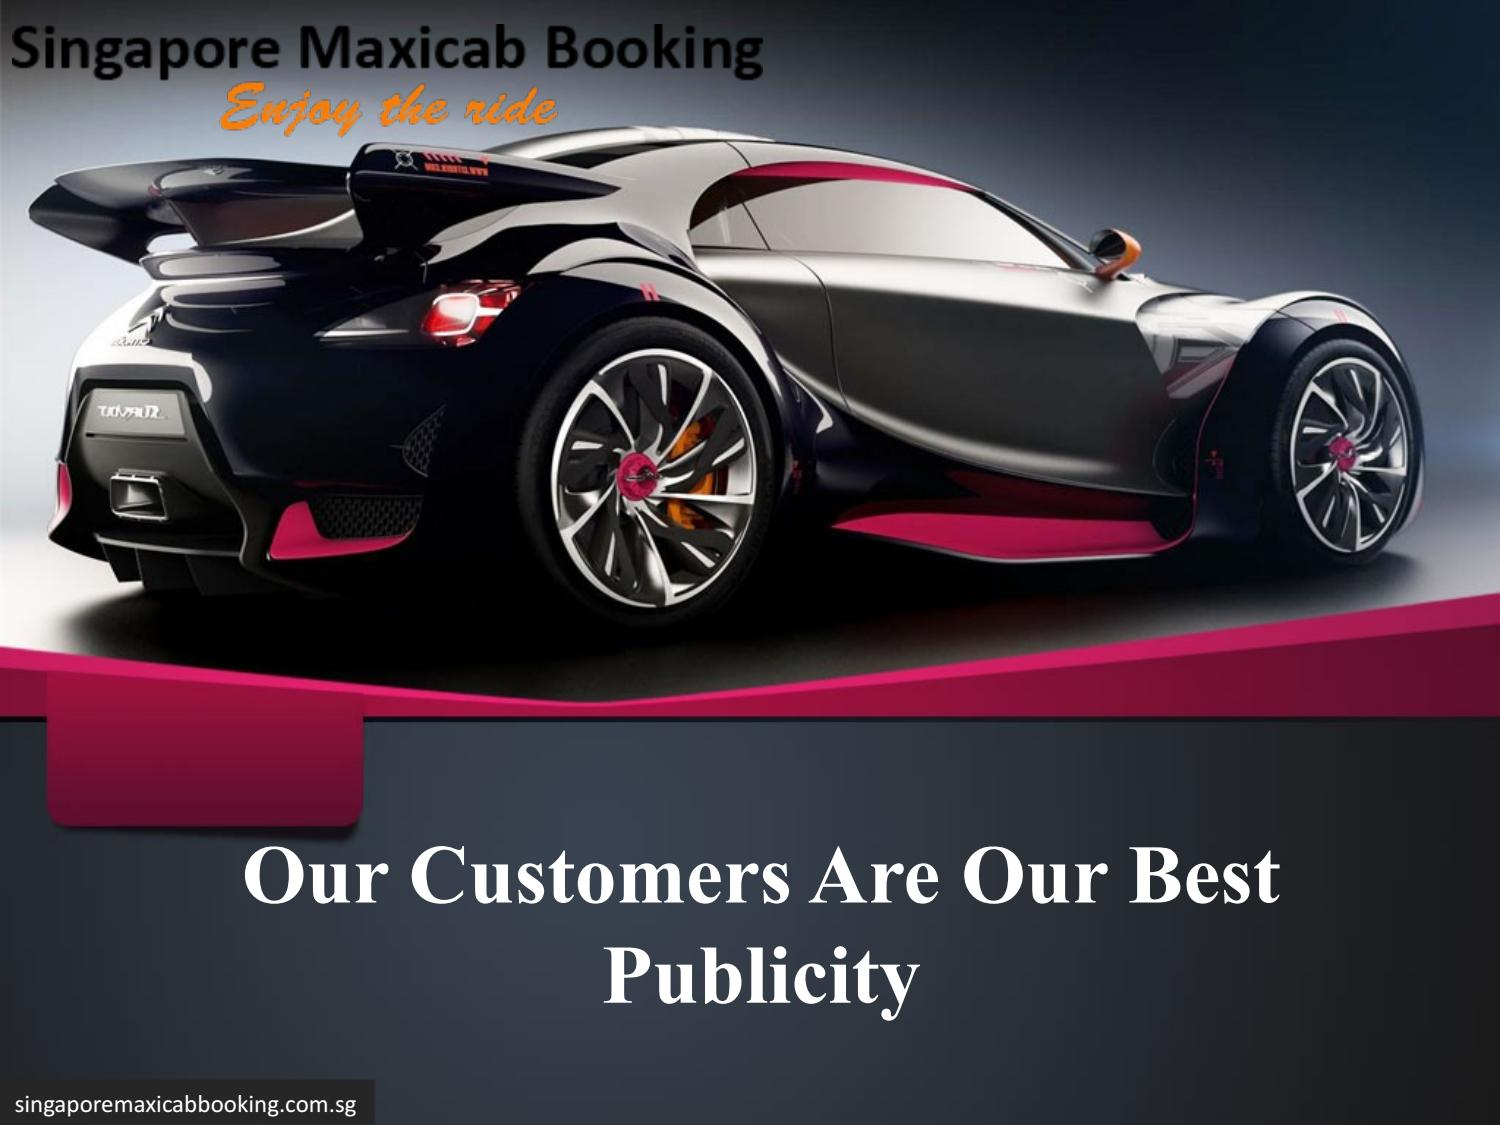 Our customers are our best publicity